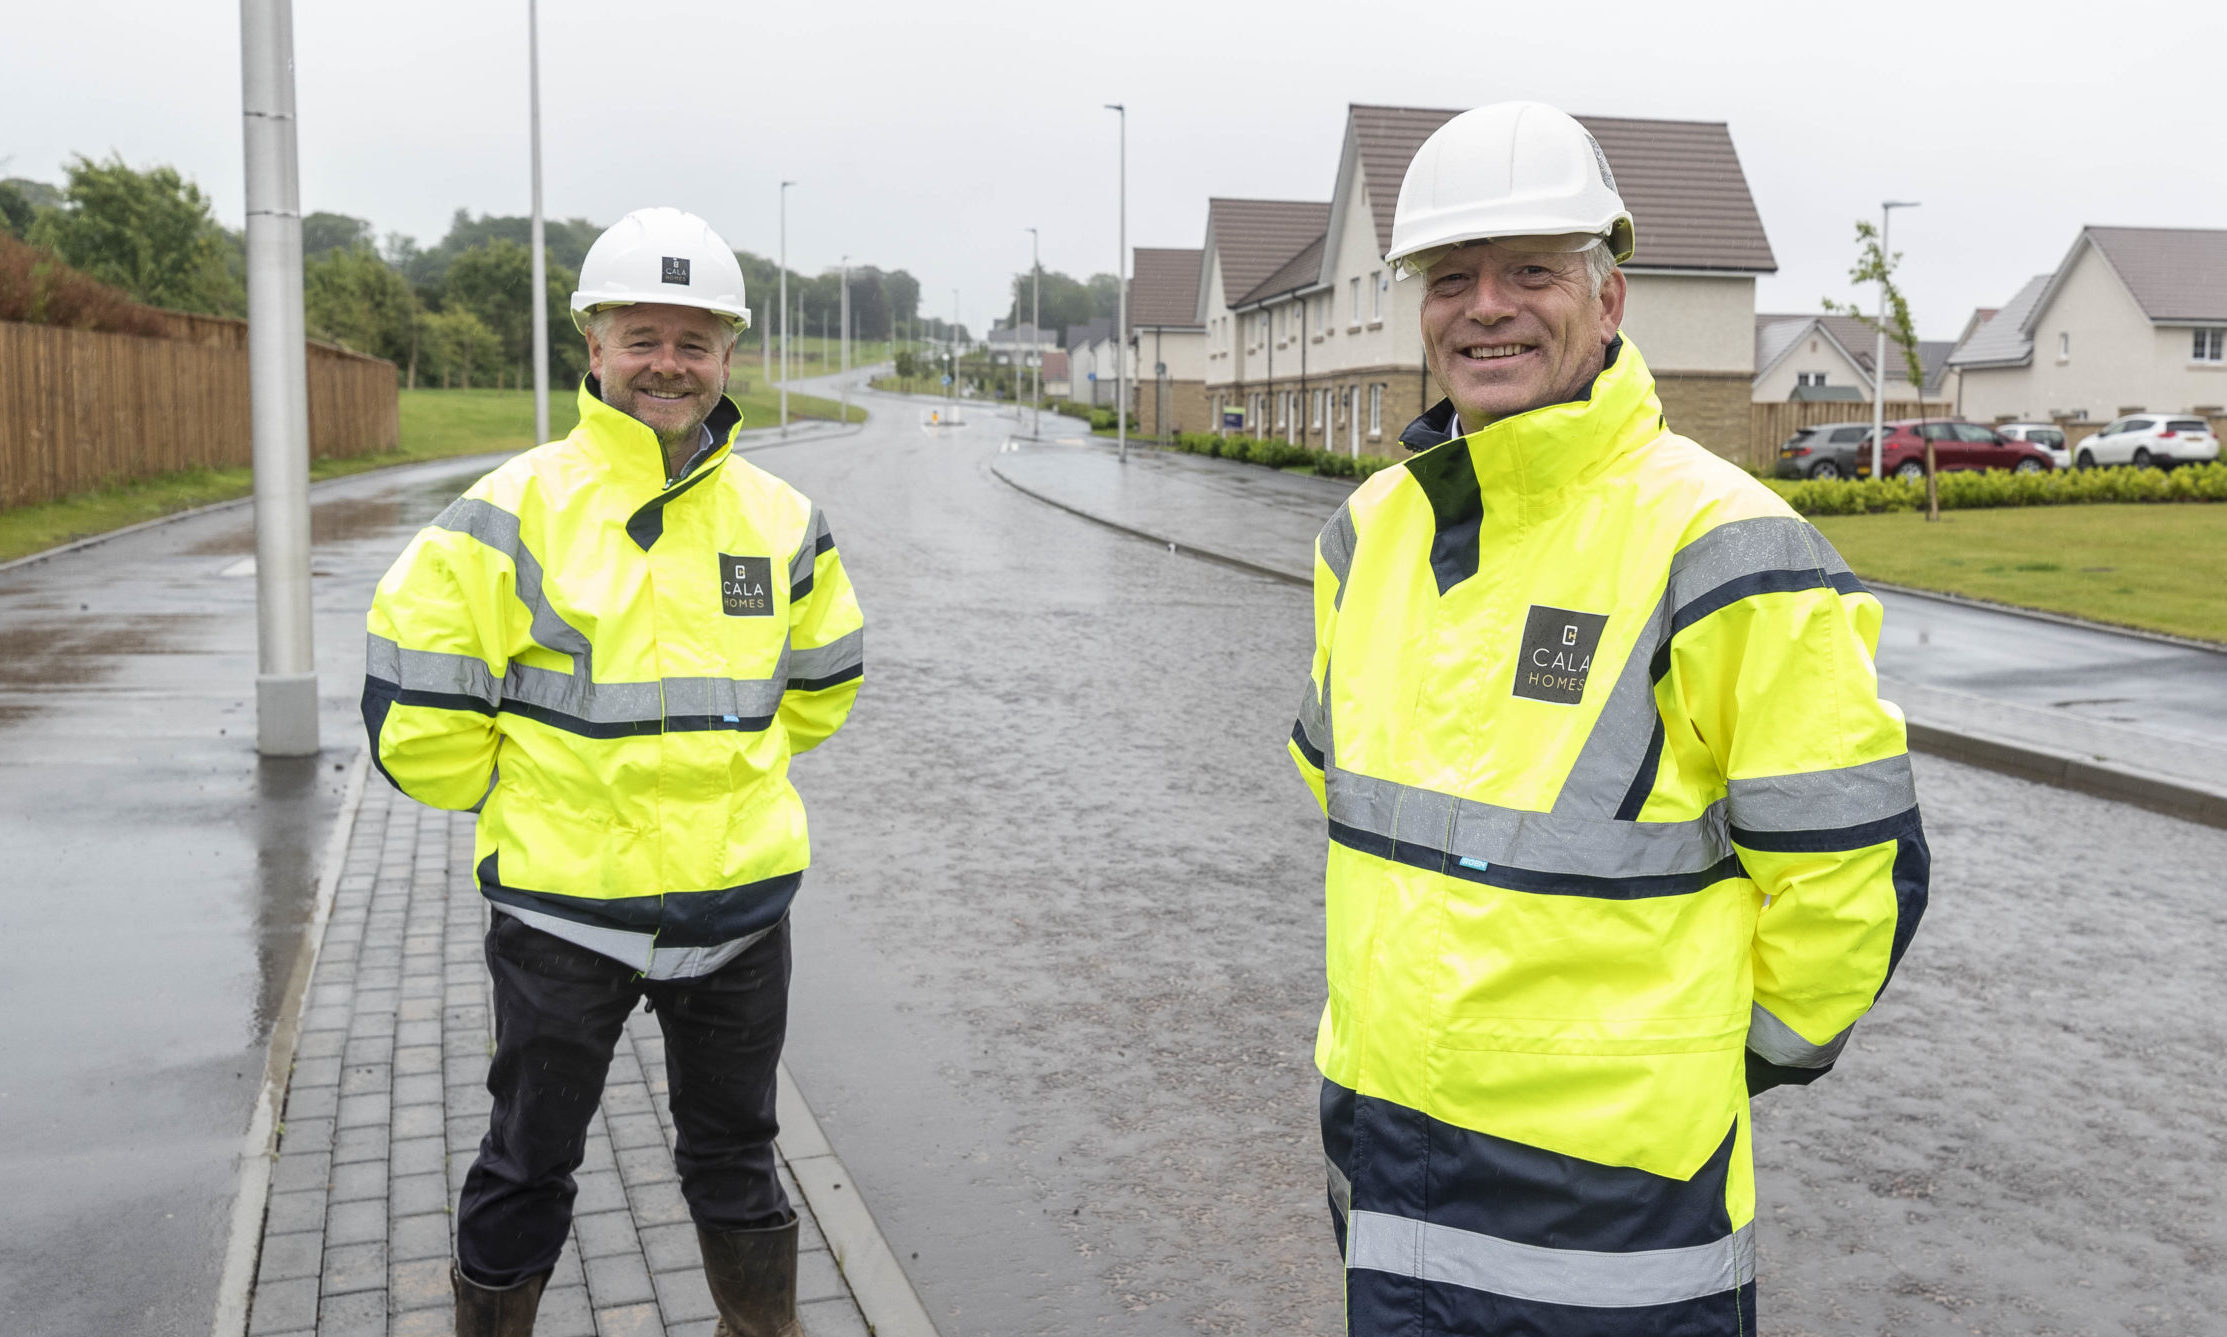 Cala Homes (North) construction director Stephen Jarvie and managing director Mike Naysmith on the newly-opened Craigbank Drive.